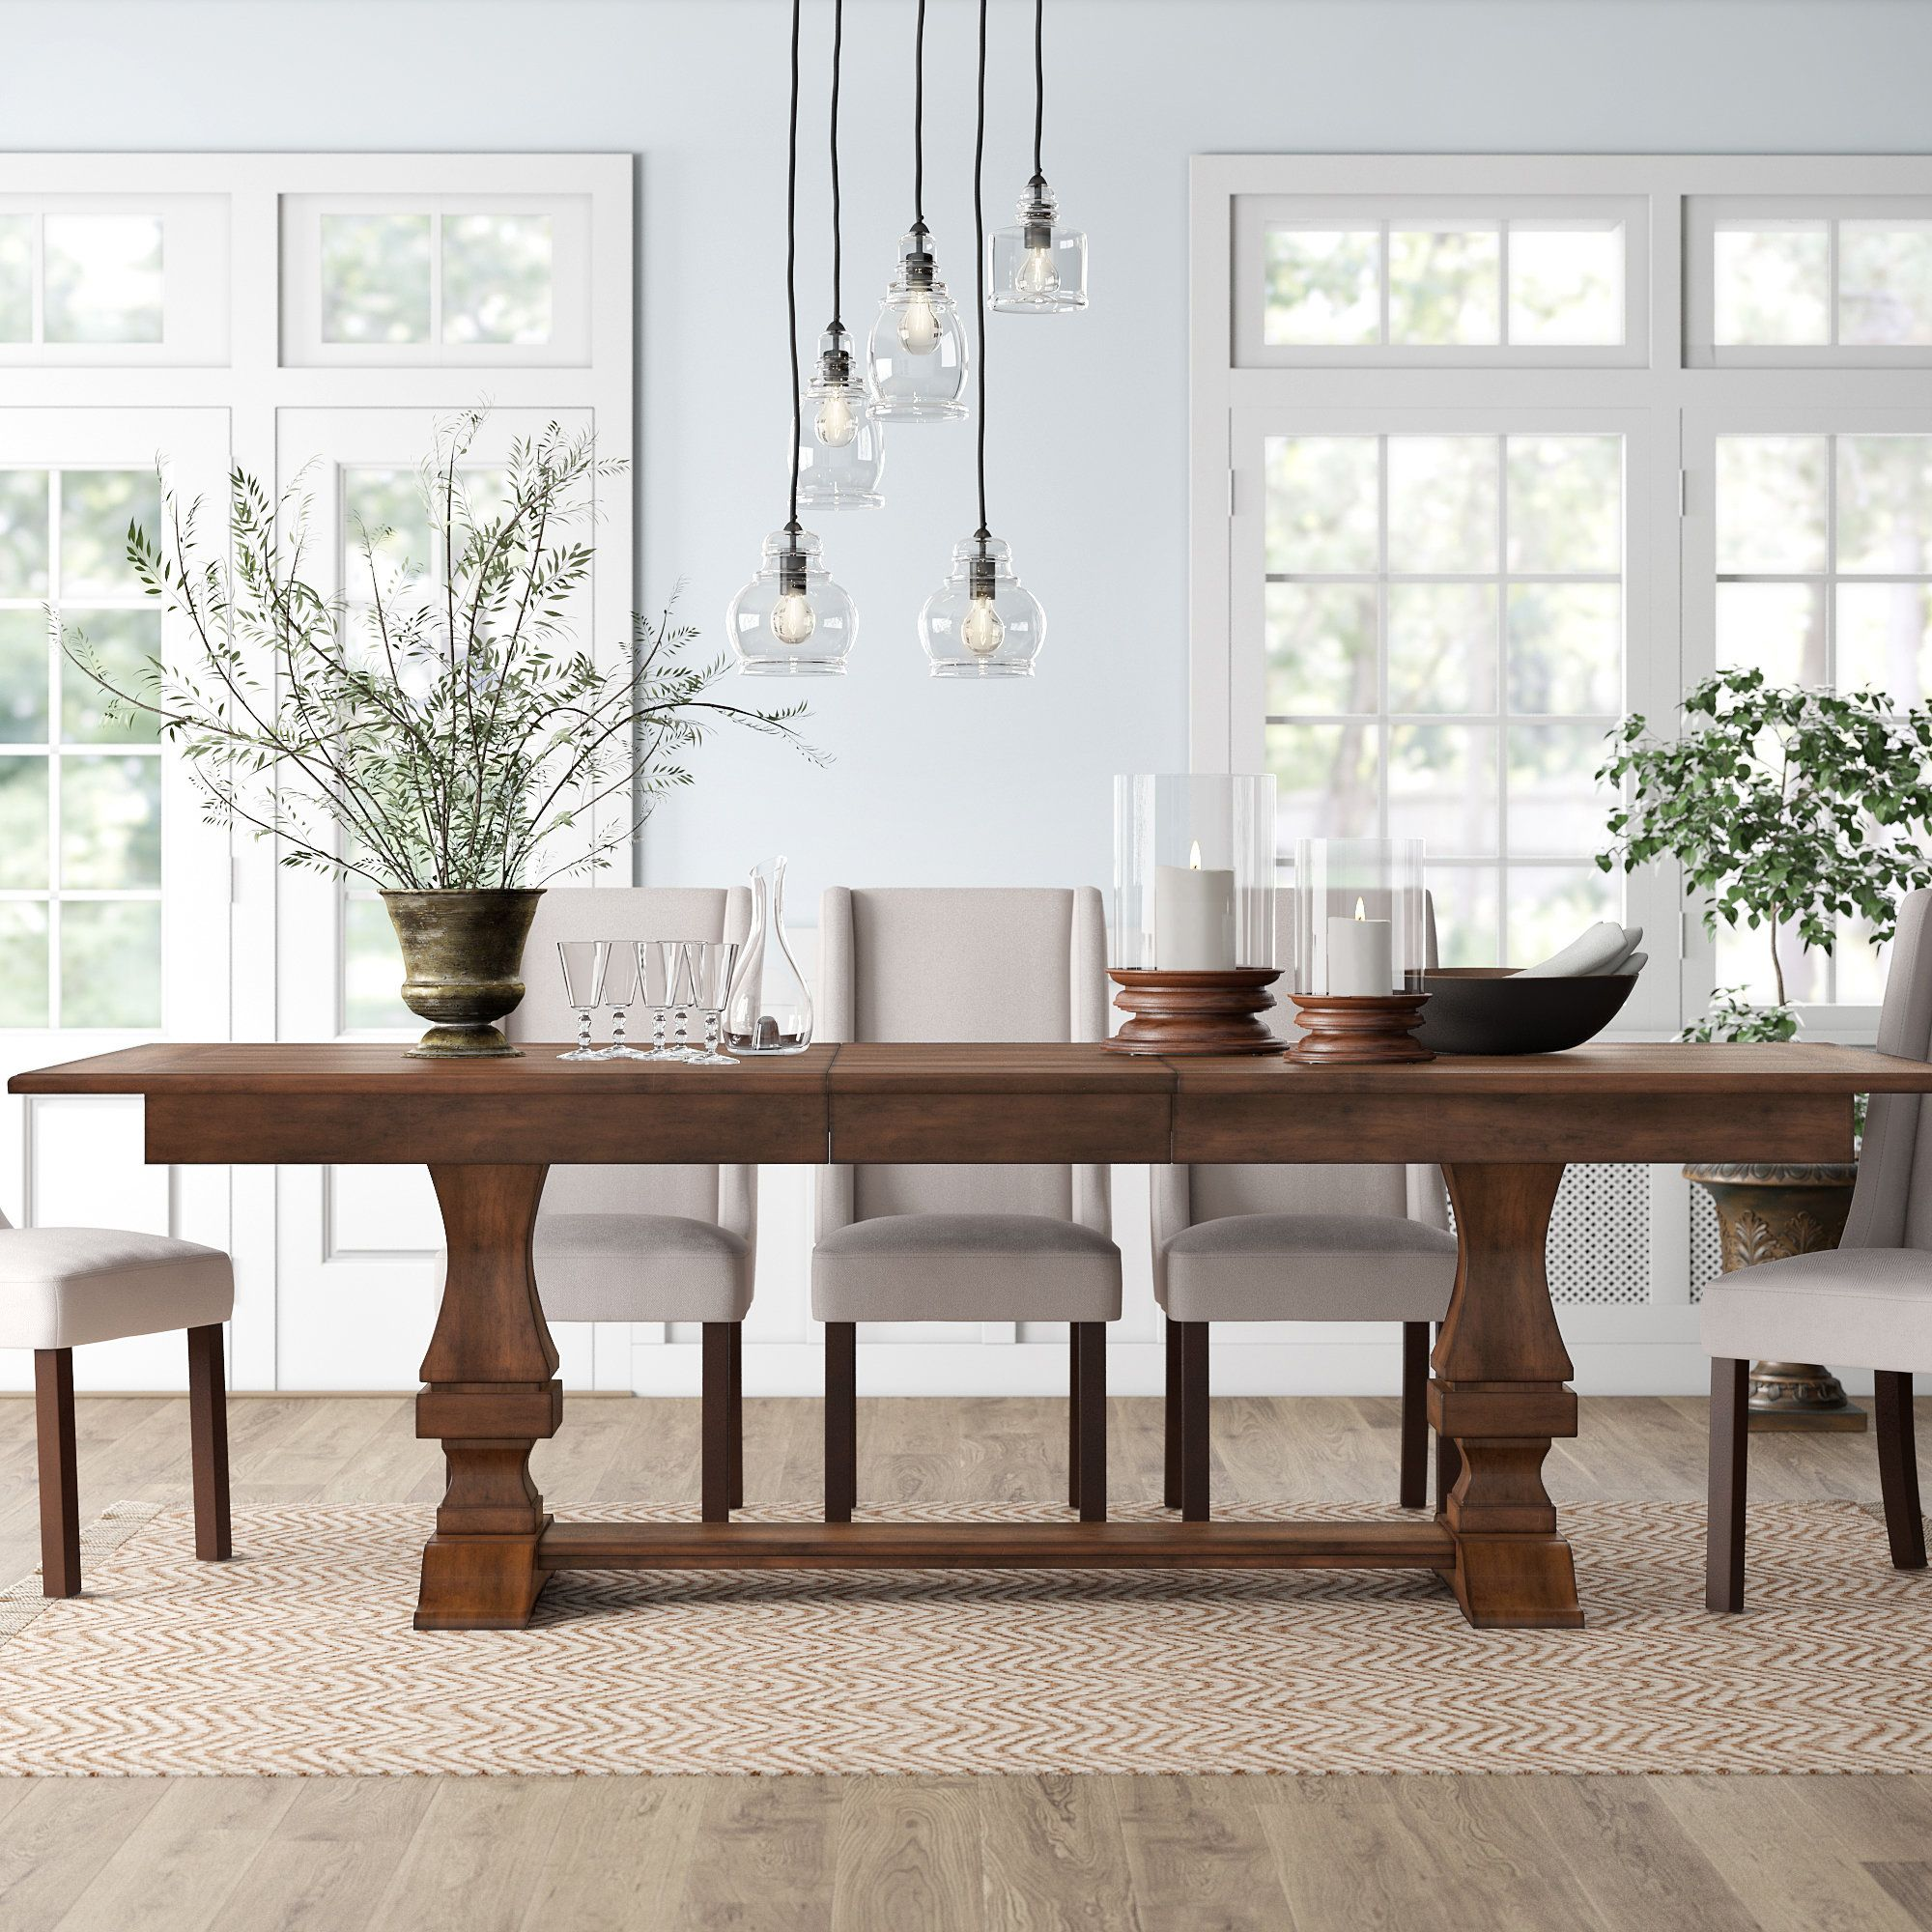 14 Stunning Industrial Kitchen Table And Chairs Ideas Wood Dining Table Extendable Dining Table Dining Room Table